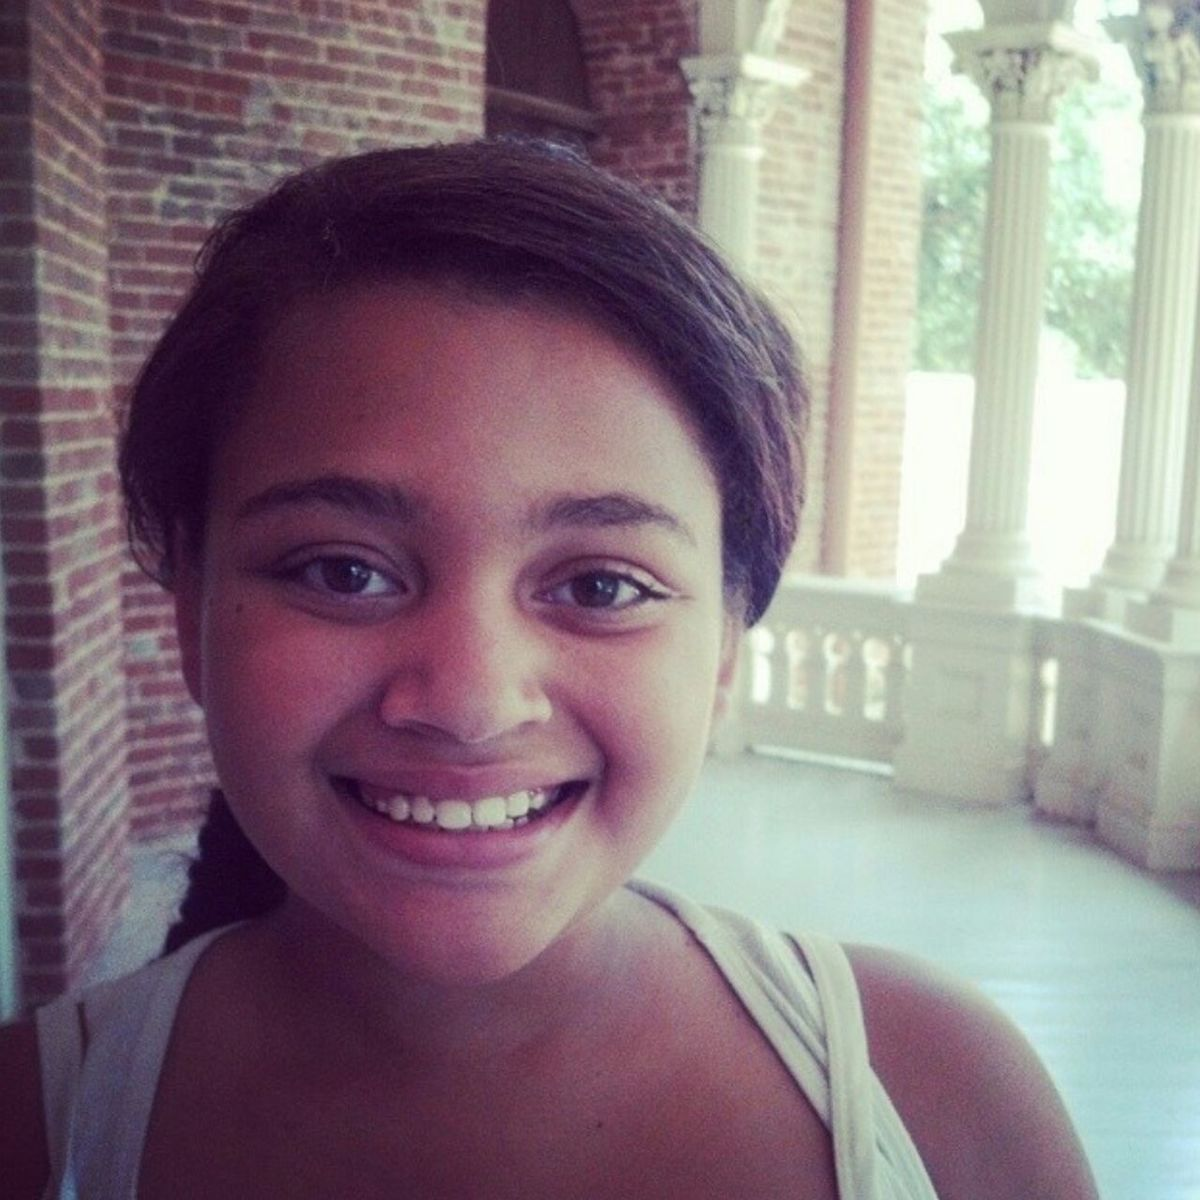 My lovely daughter Proud To Be Biracial Beautiful Girlygirl